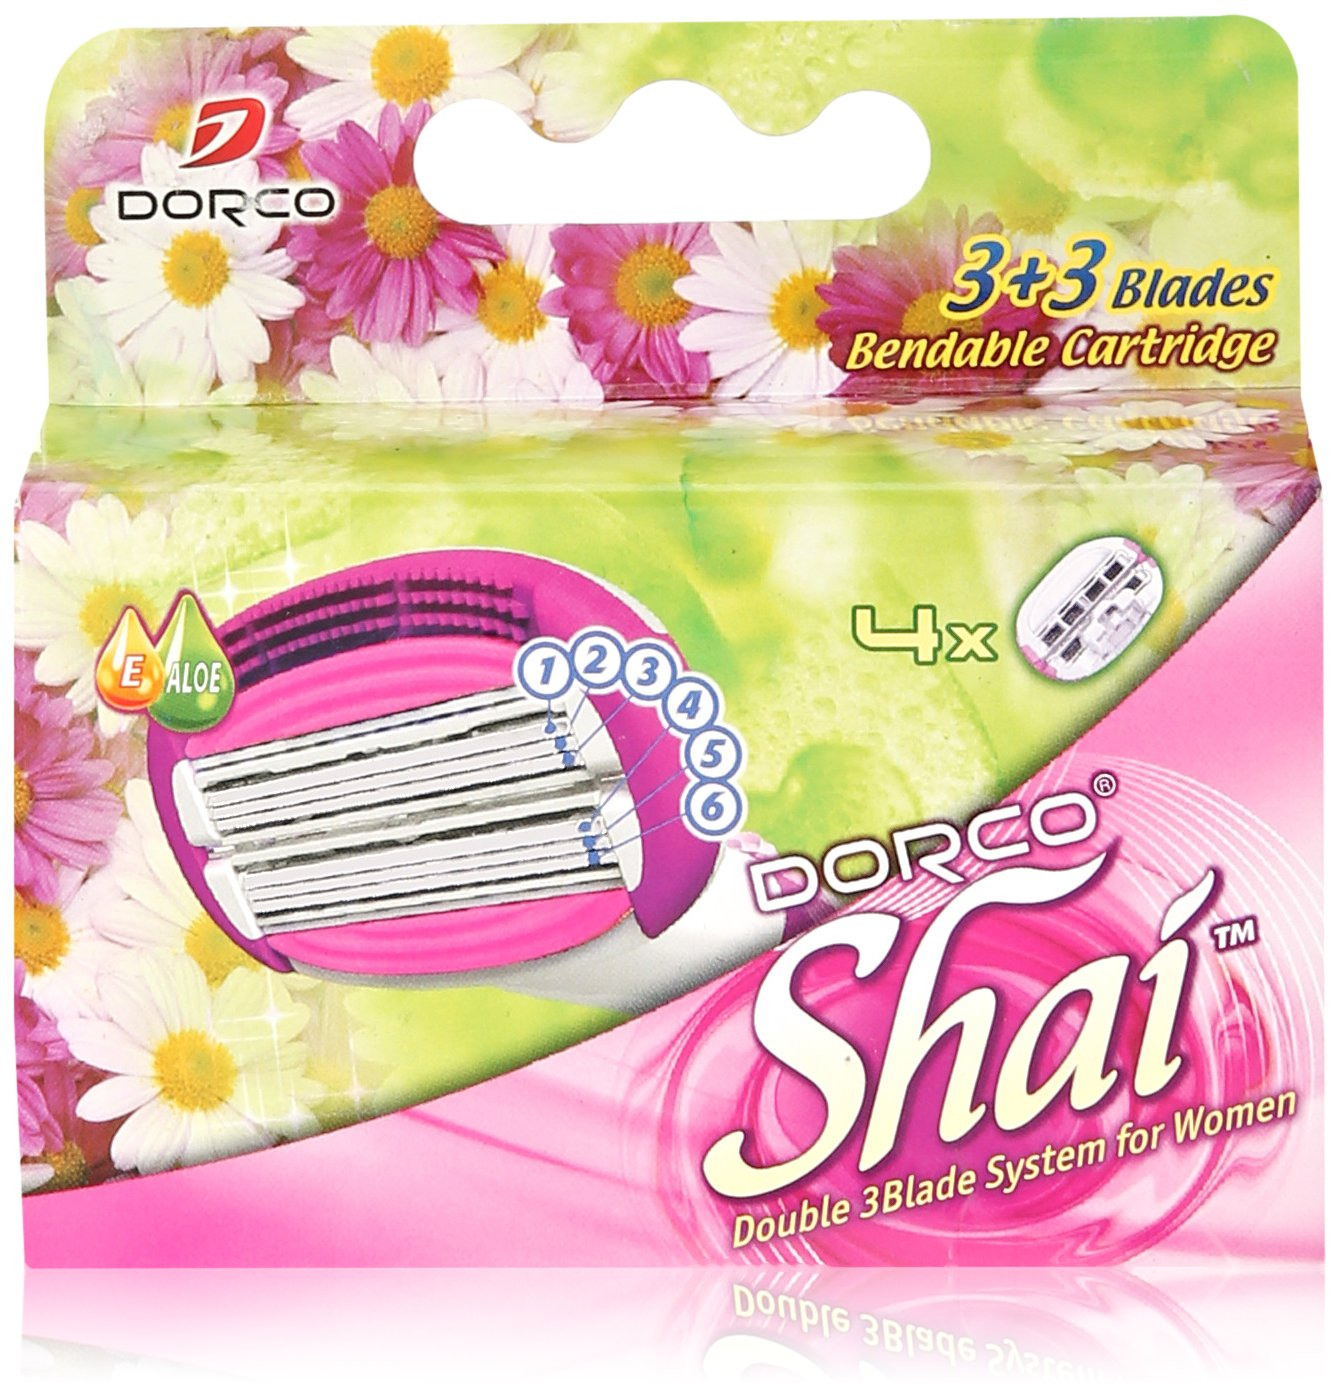 Soft Touch™ 6 Blade Razor System for Women Cartridges (Dorco Shai)(LSXA1040)